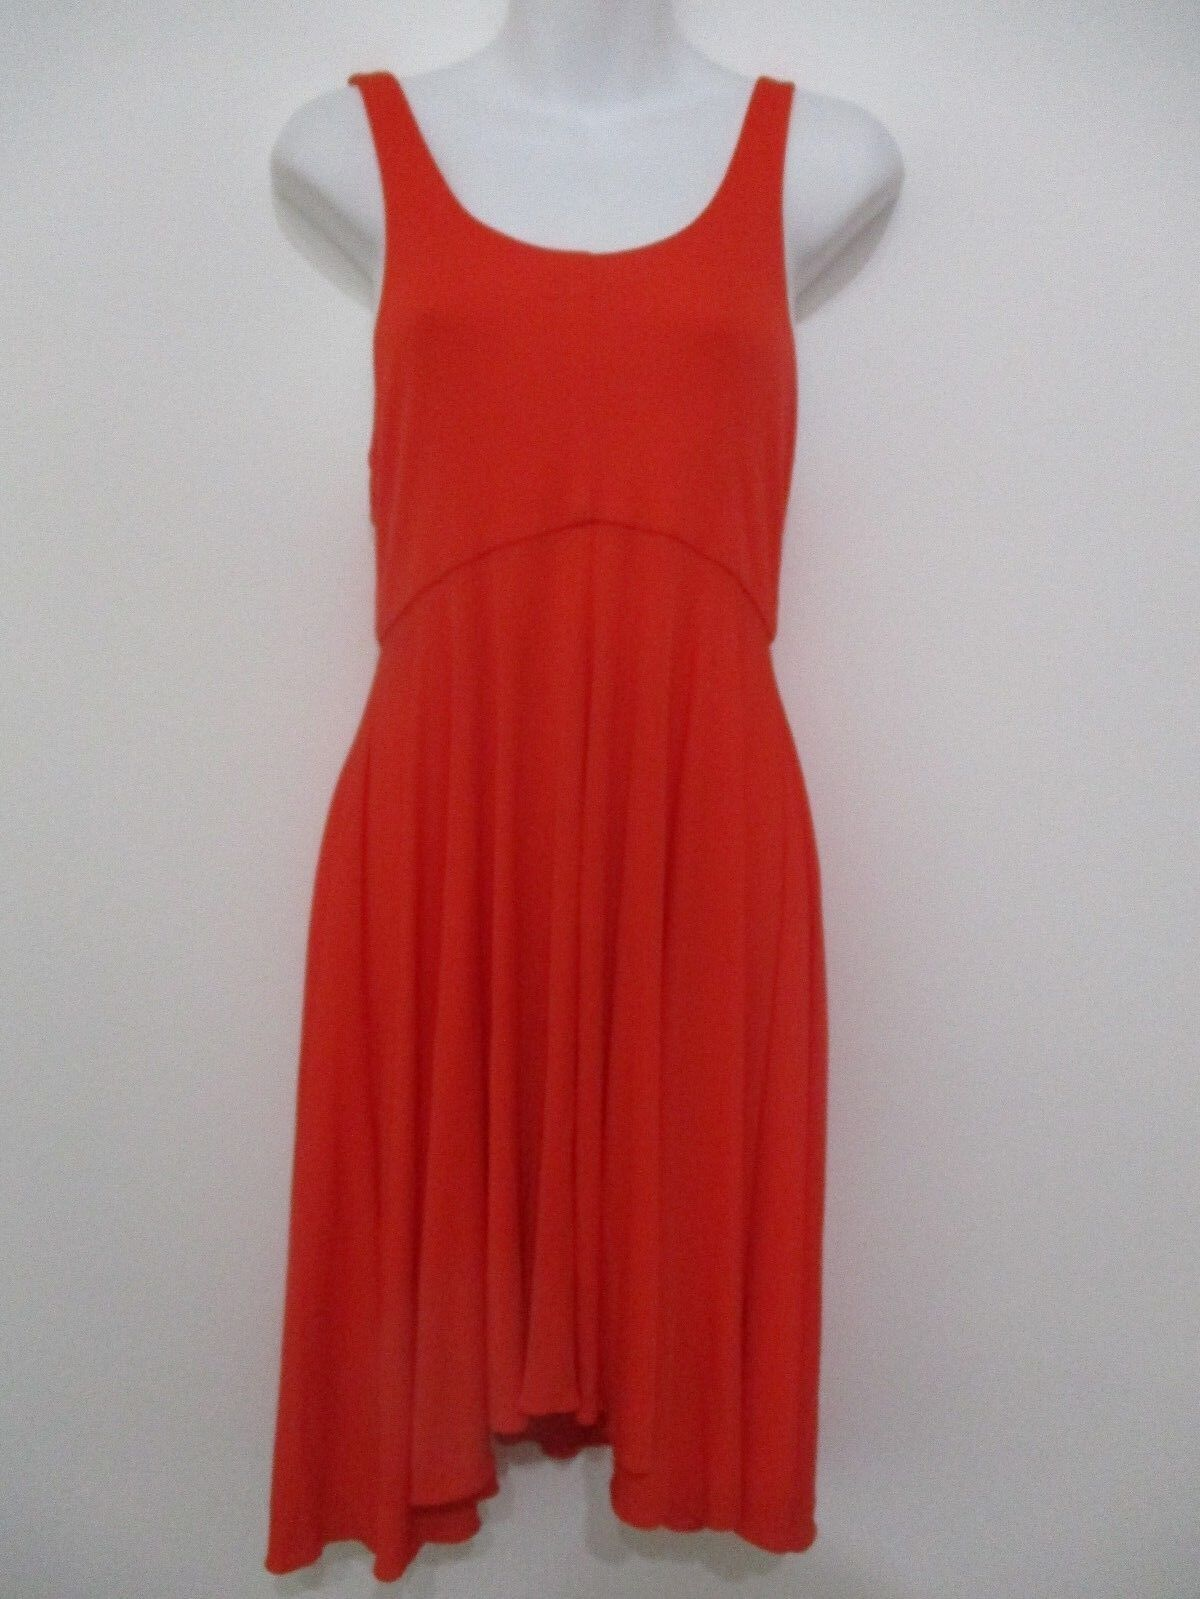 Milly Fit and Flare Sleeveless Dress orange Sz Small NWOT